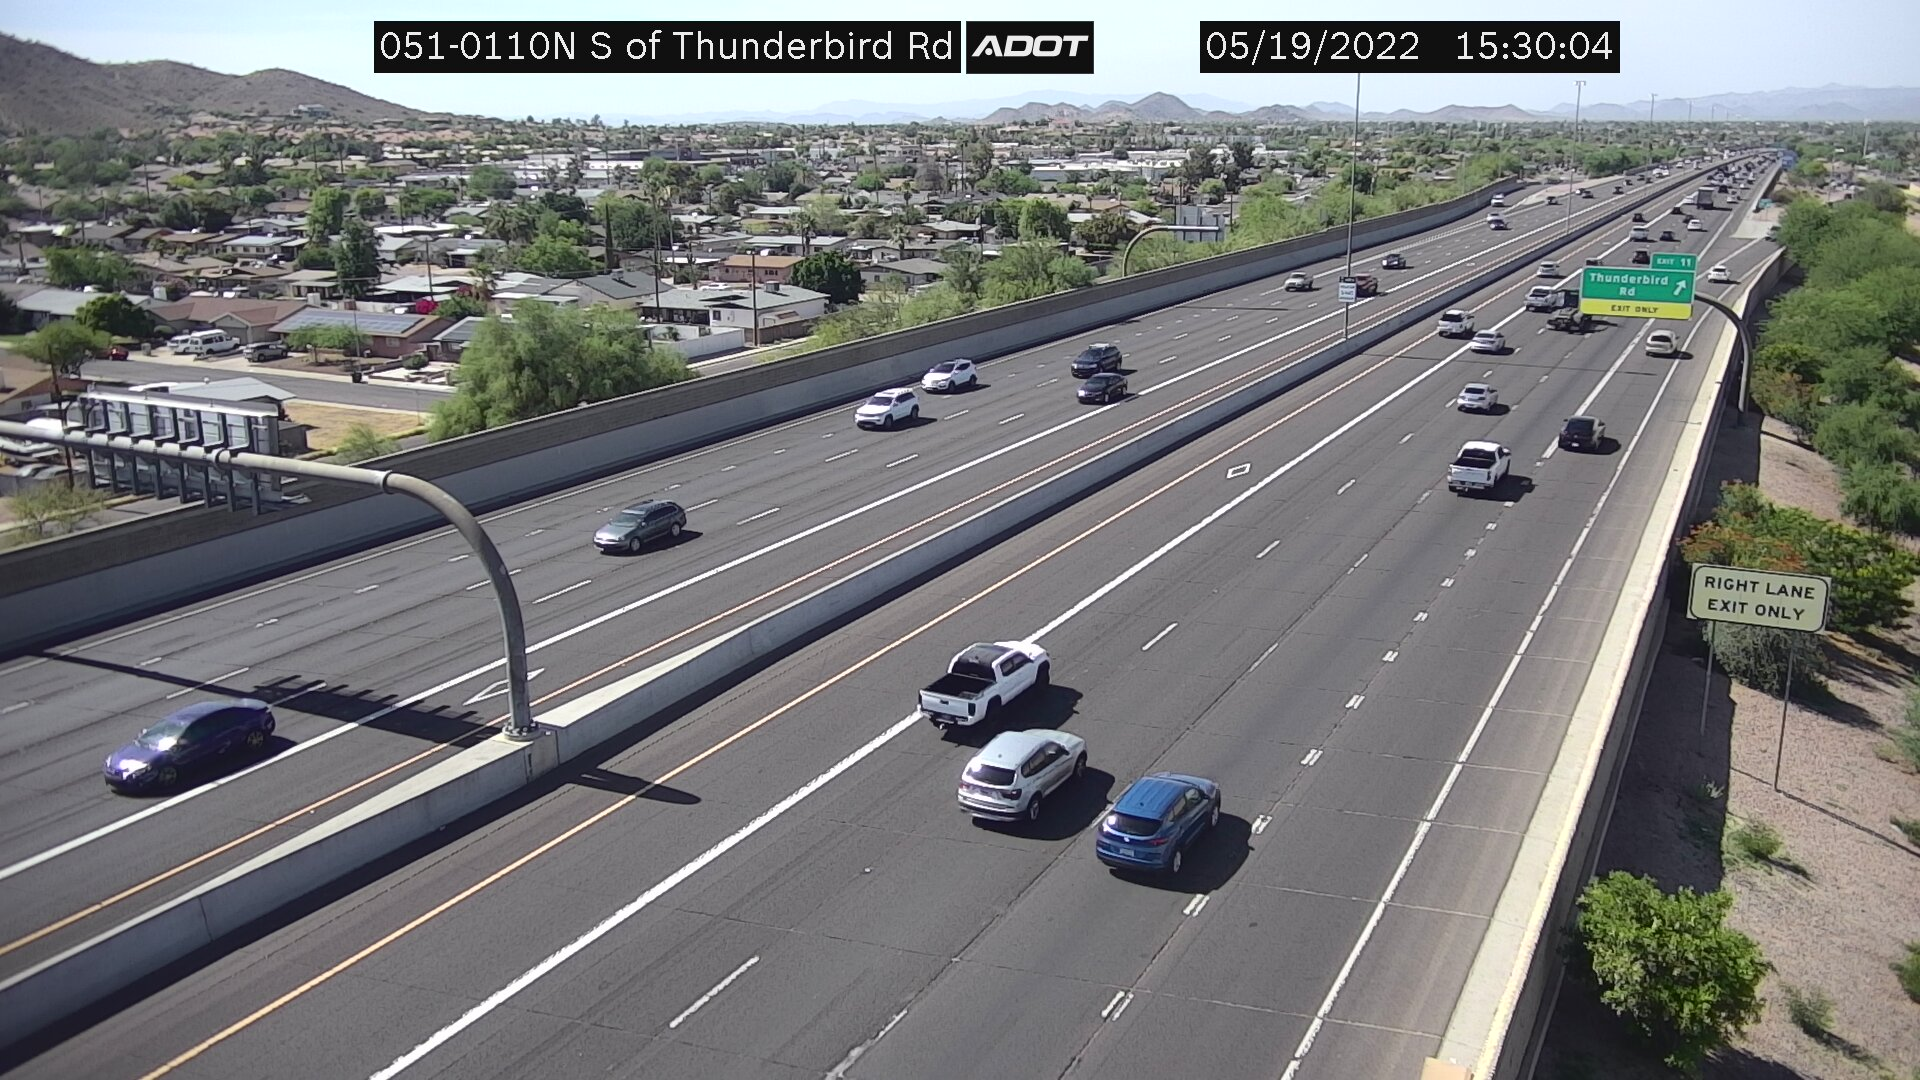 S of Thunderbird NB (SR51) (087) - Phoenix and Arizona